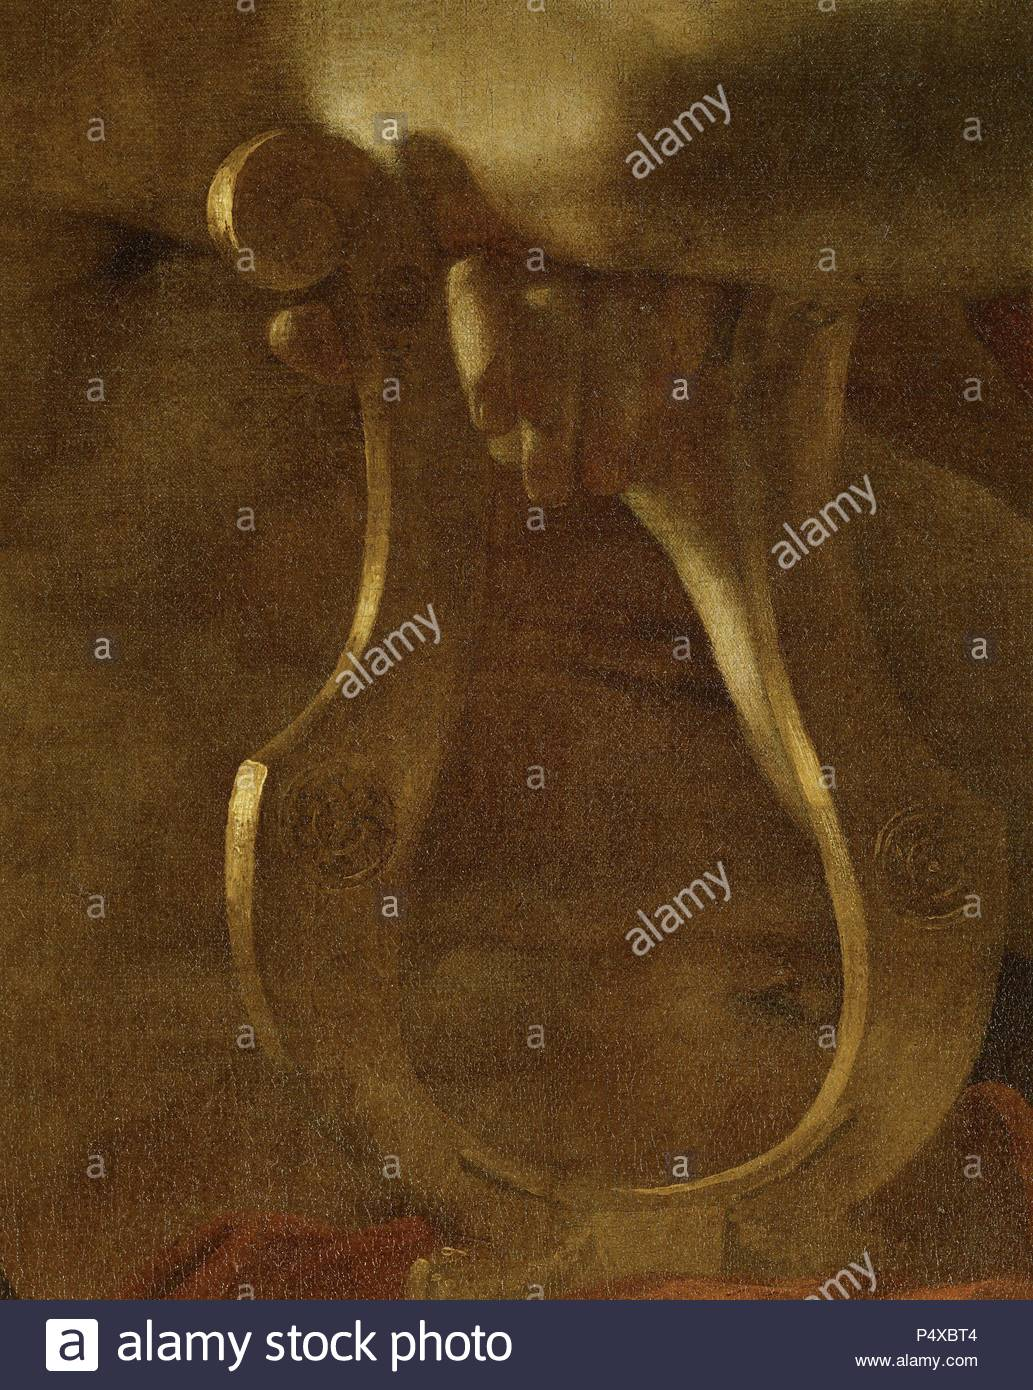 5bcbde1d0362 L inspiration du poete - The poet s inspiration. Detail of lyre. For  overall view please see 40-11-05 8. Oil on canvas (1638) 182 x 213 cm RF  1774.